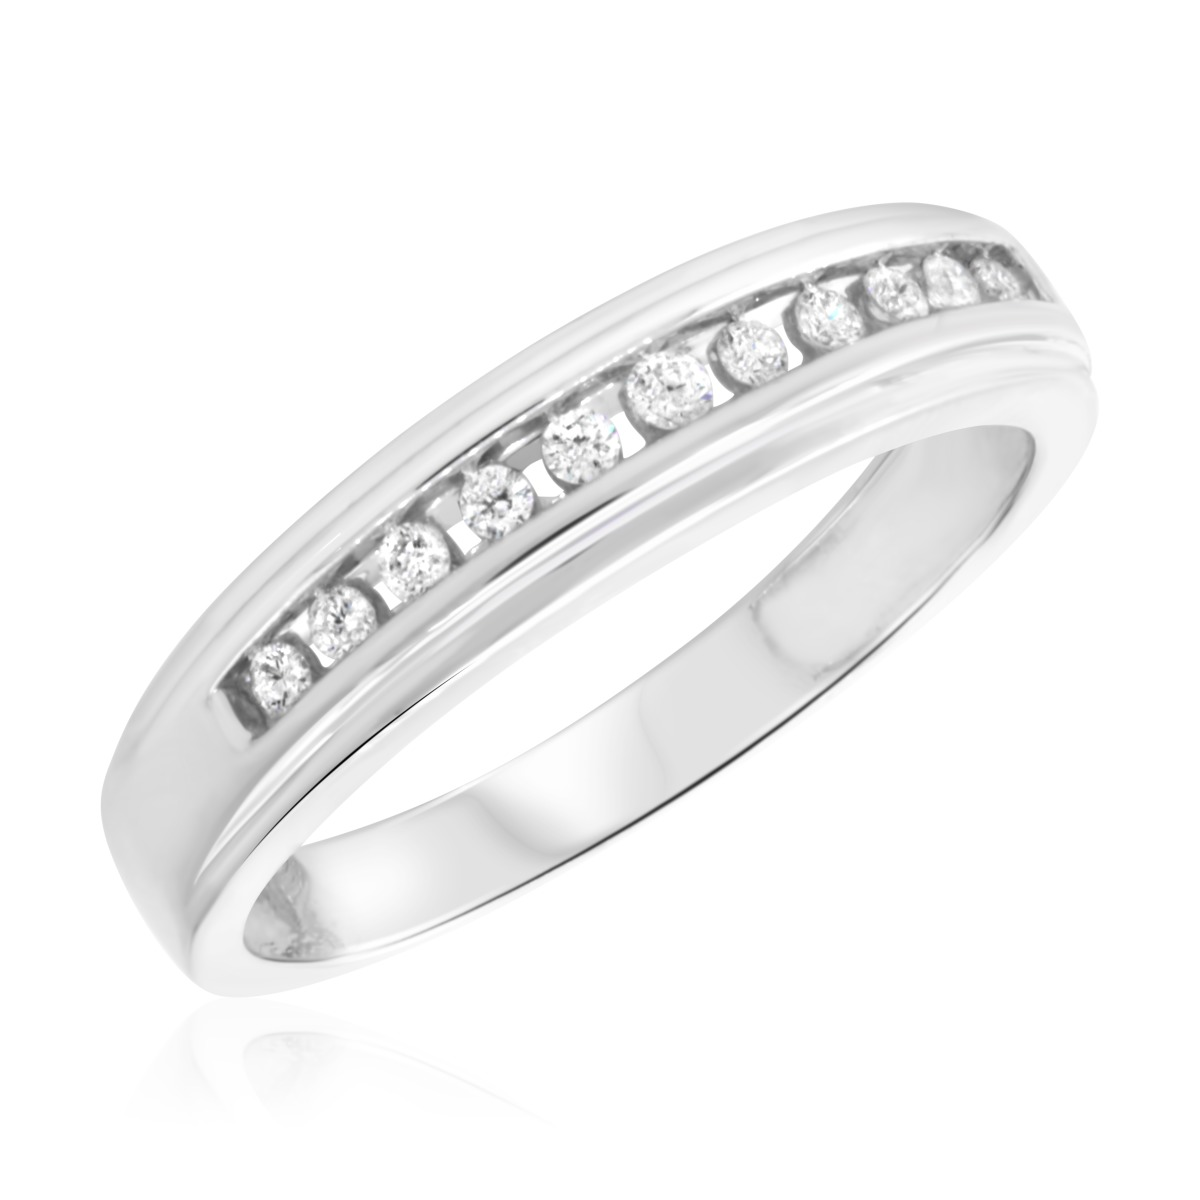 1/4 Carat T.W. Diamond Mens Wedding Band 14K White Gold